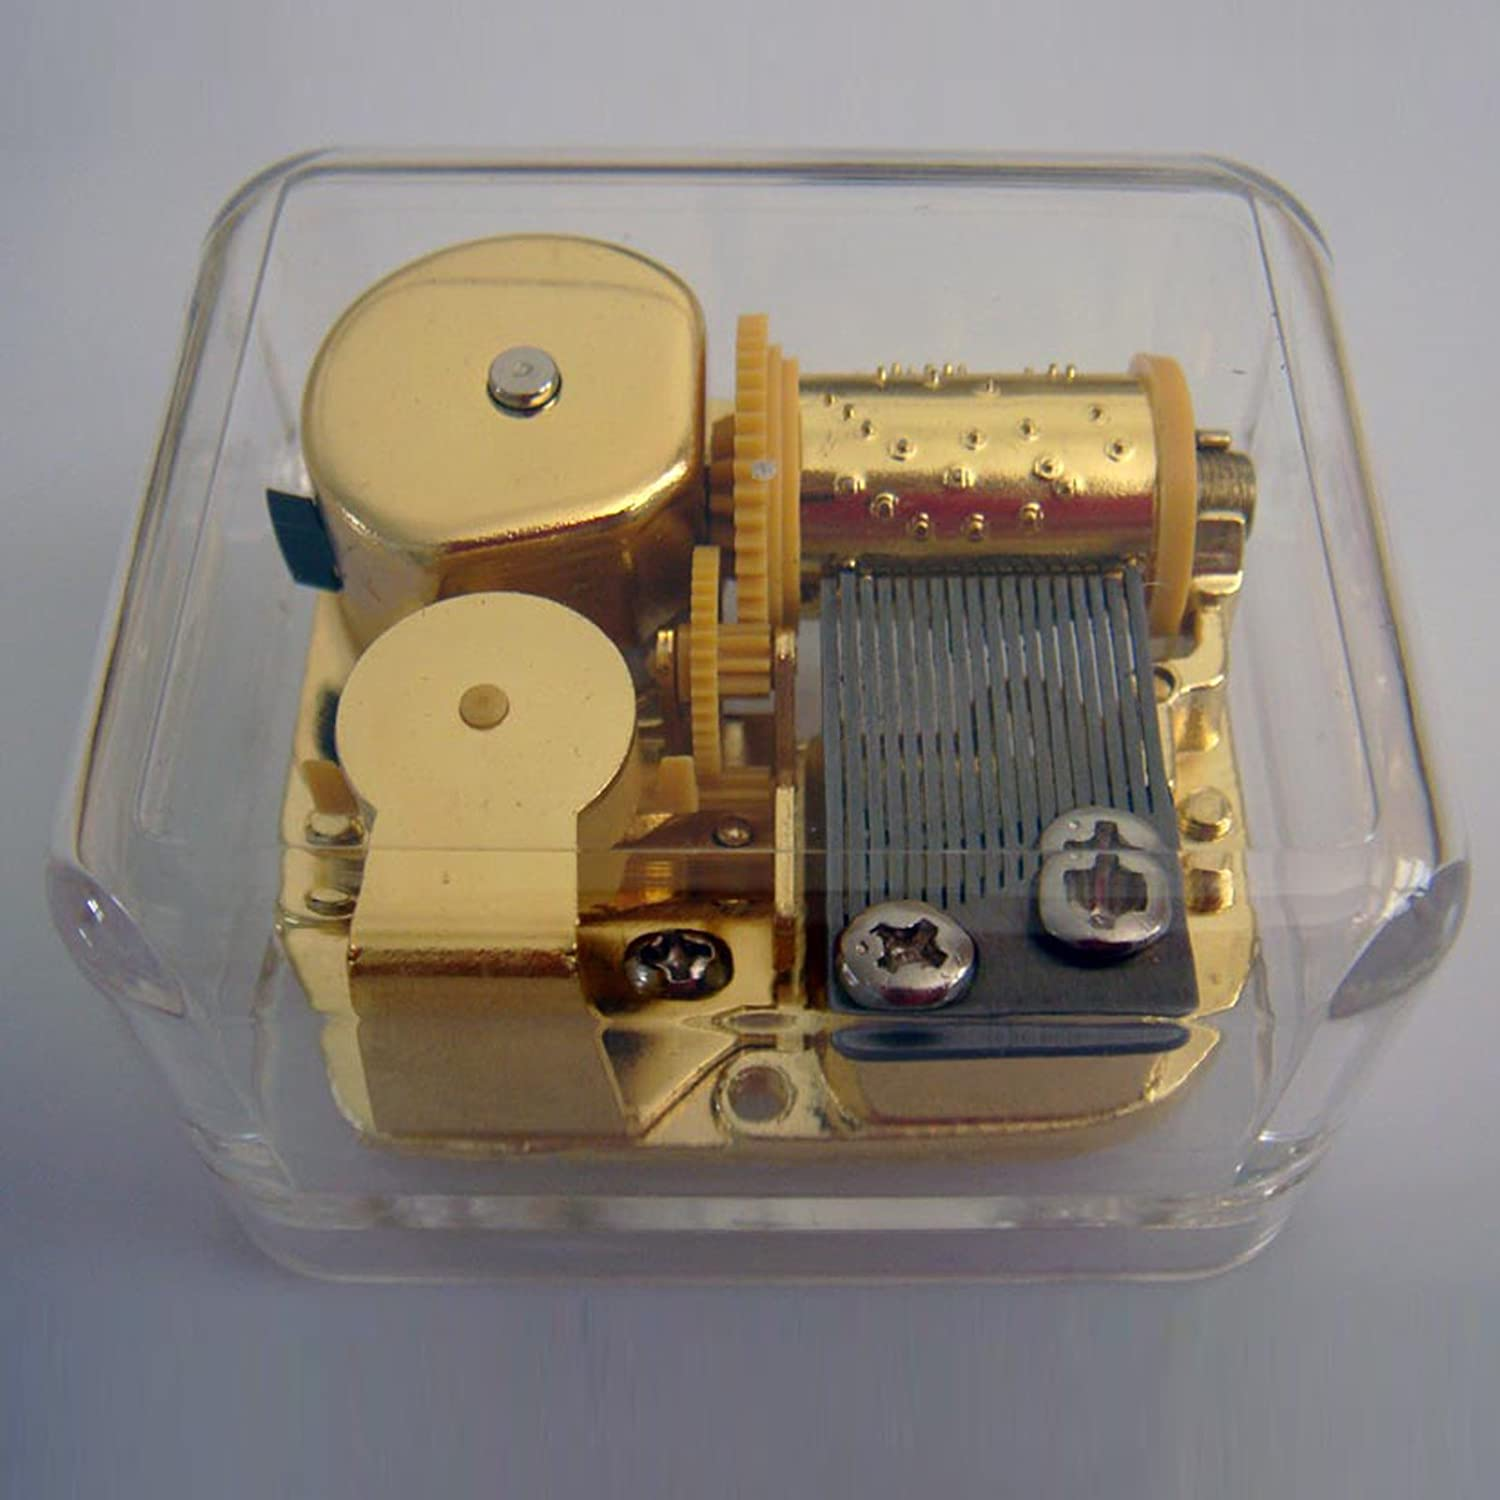 Away In A Manger See-Through Wind Up Music Box Gold Plated Retro Musicbox Hwamart